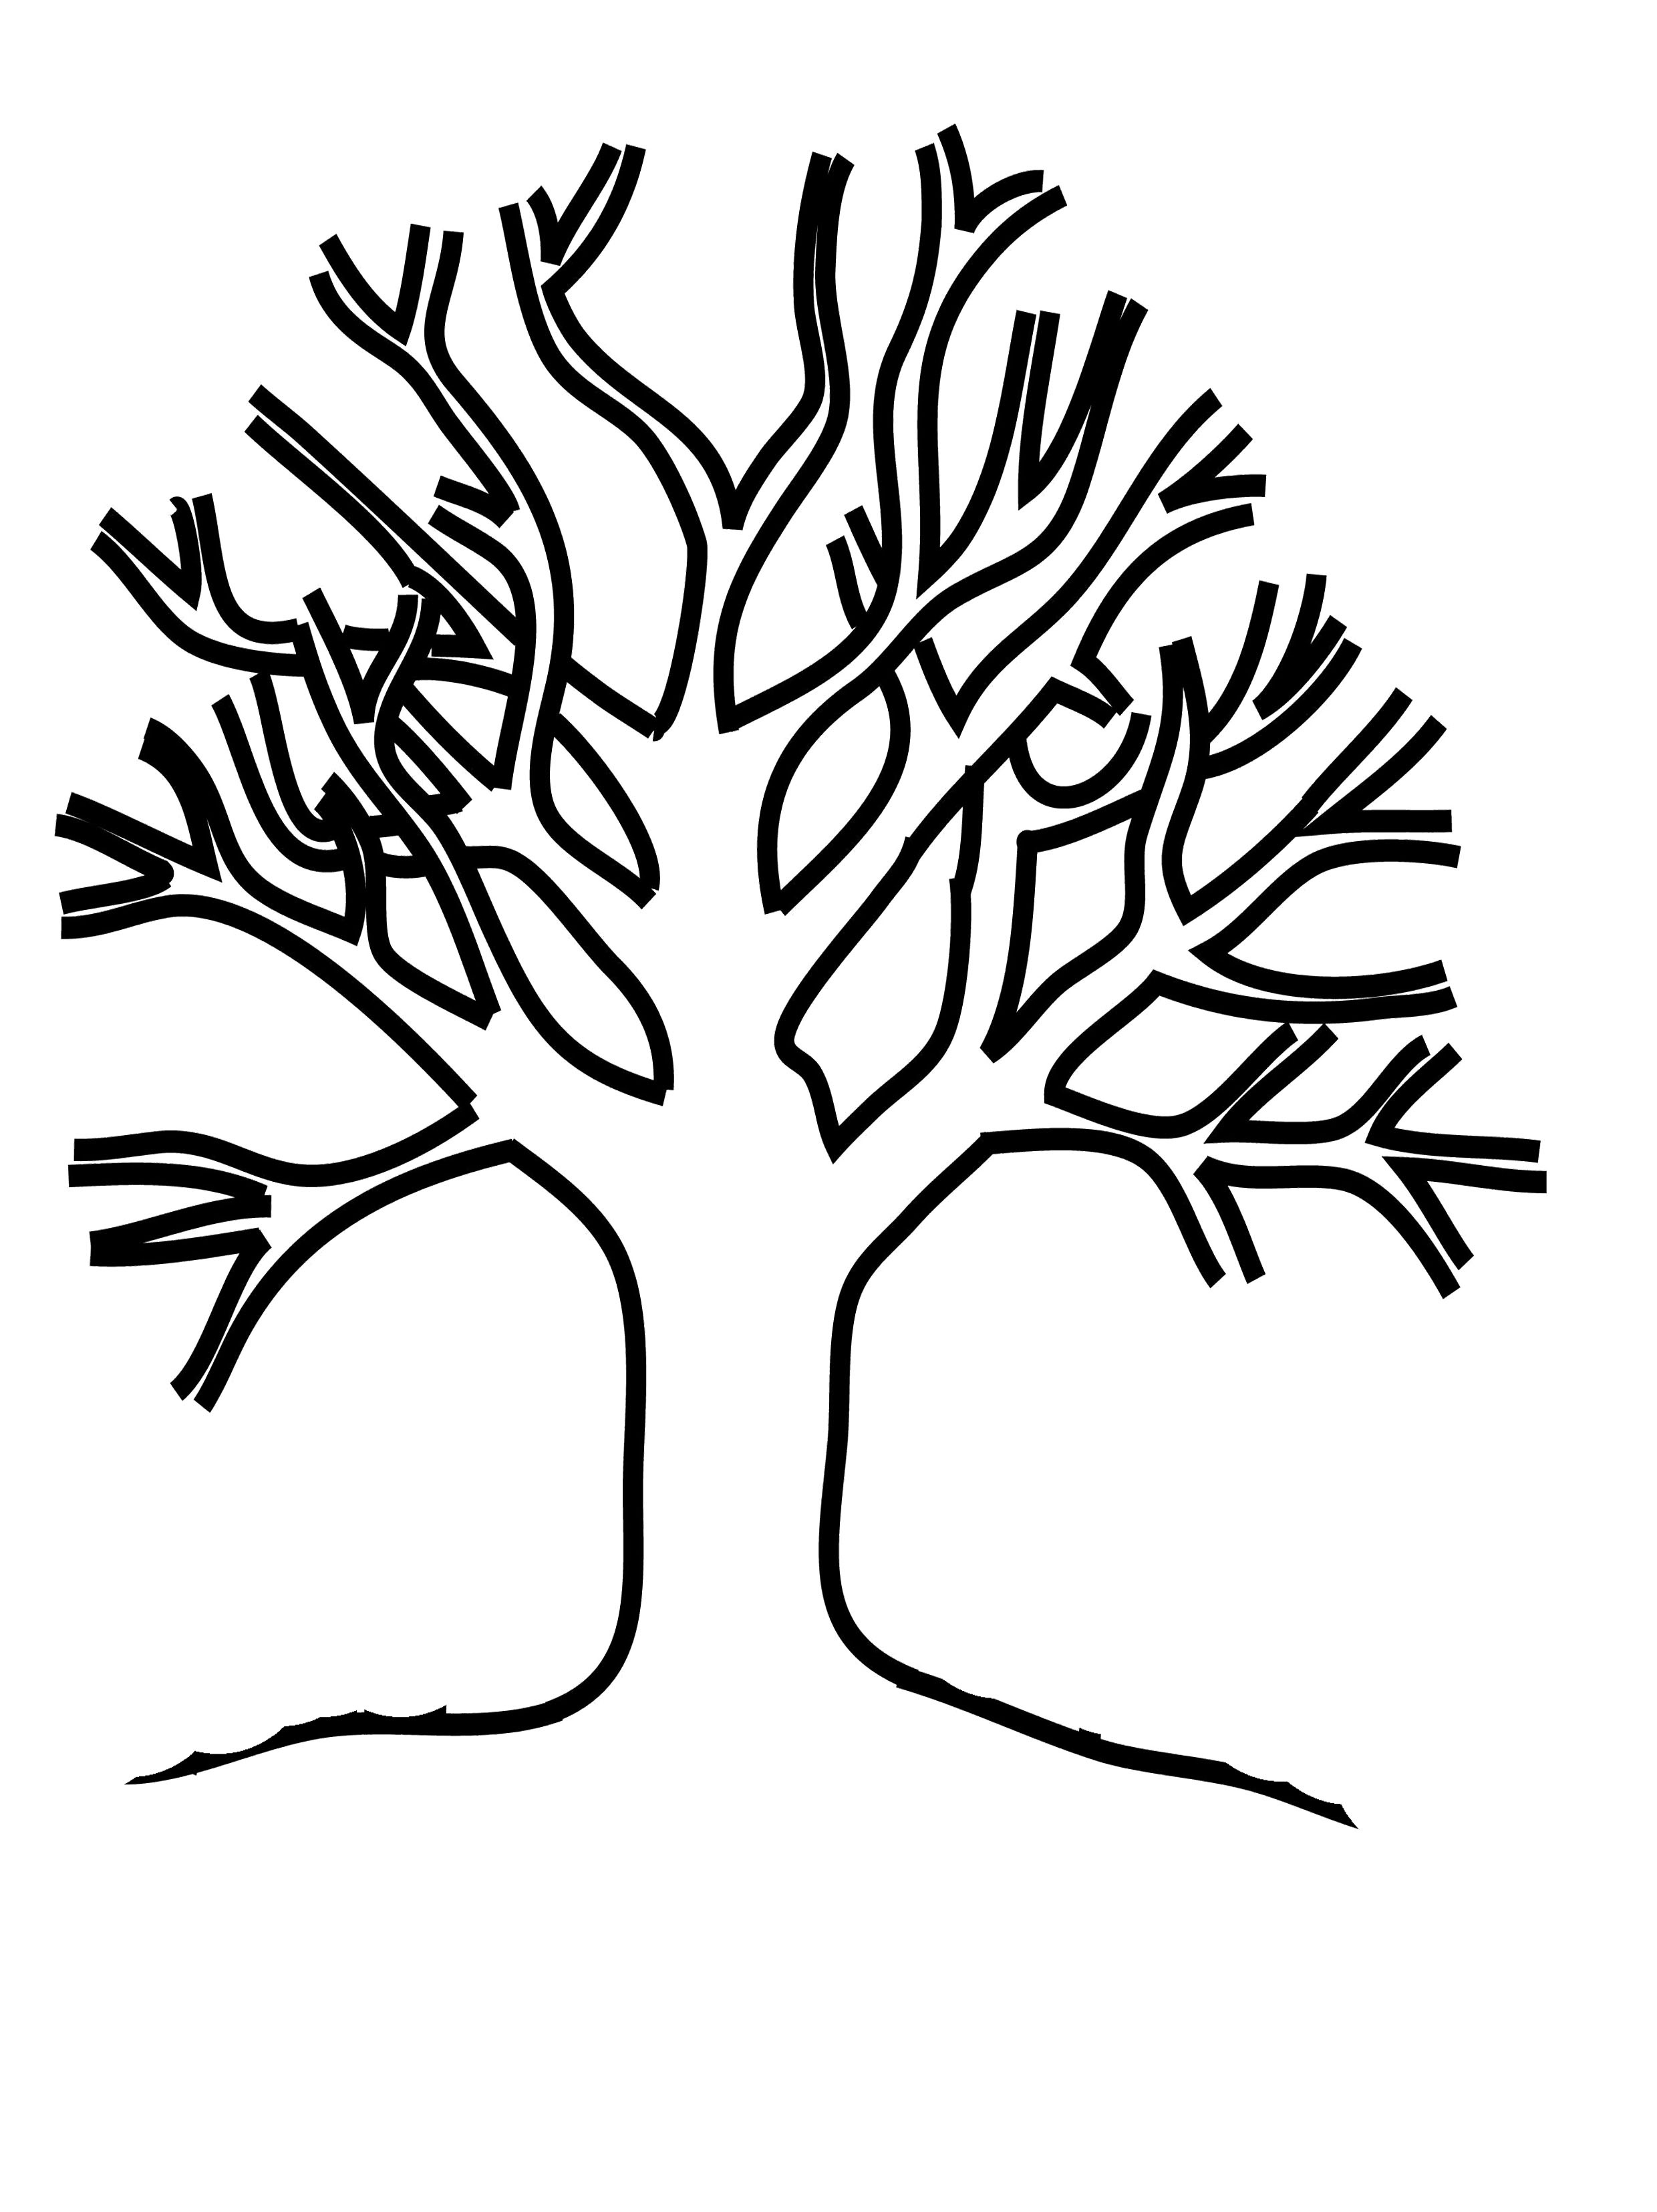 Free Bare Tree Template, Download Free Clip Art, Free Clip ...